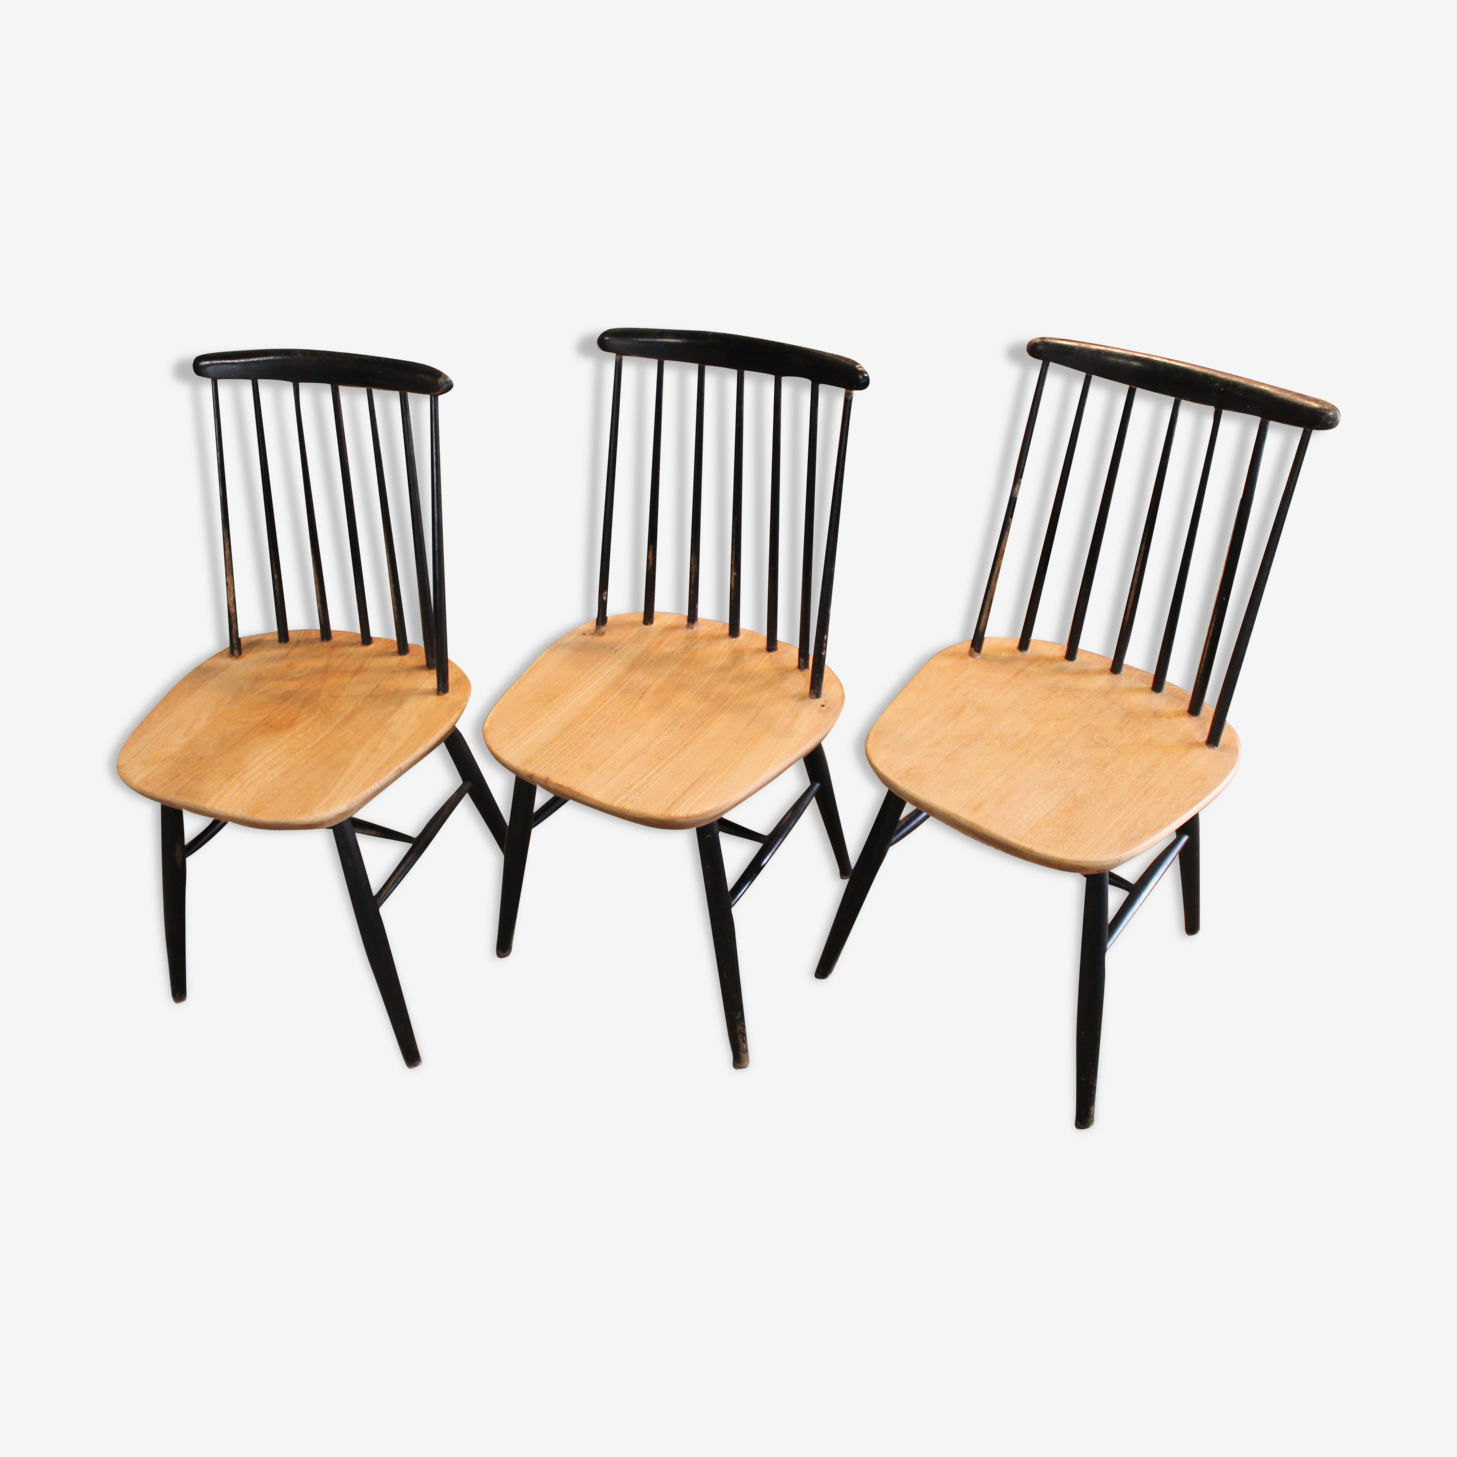 Set of three chairs